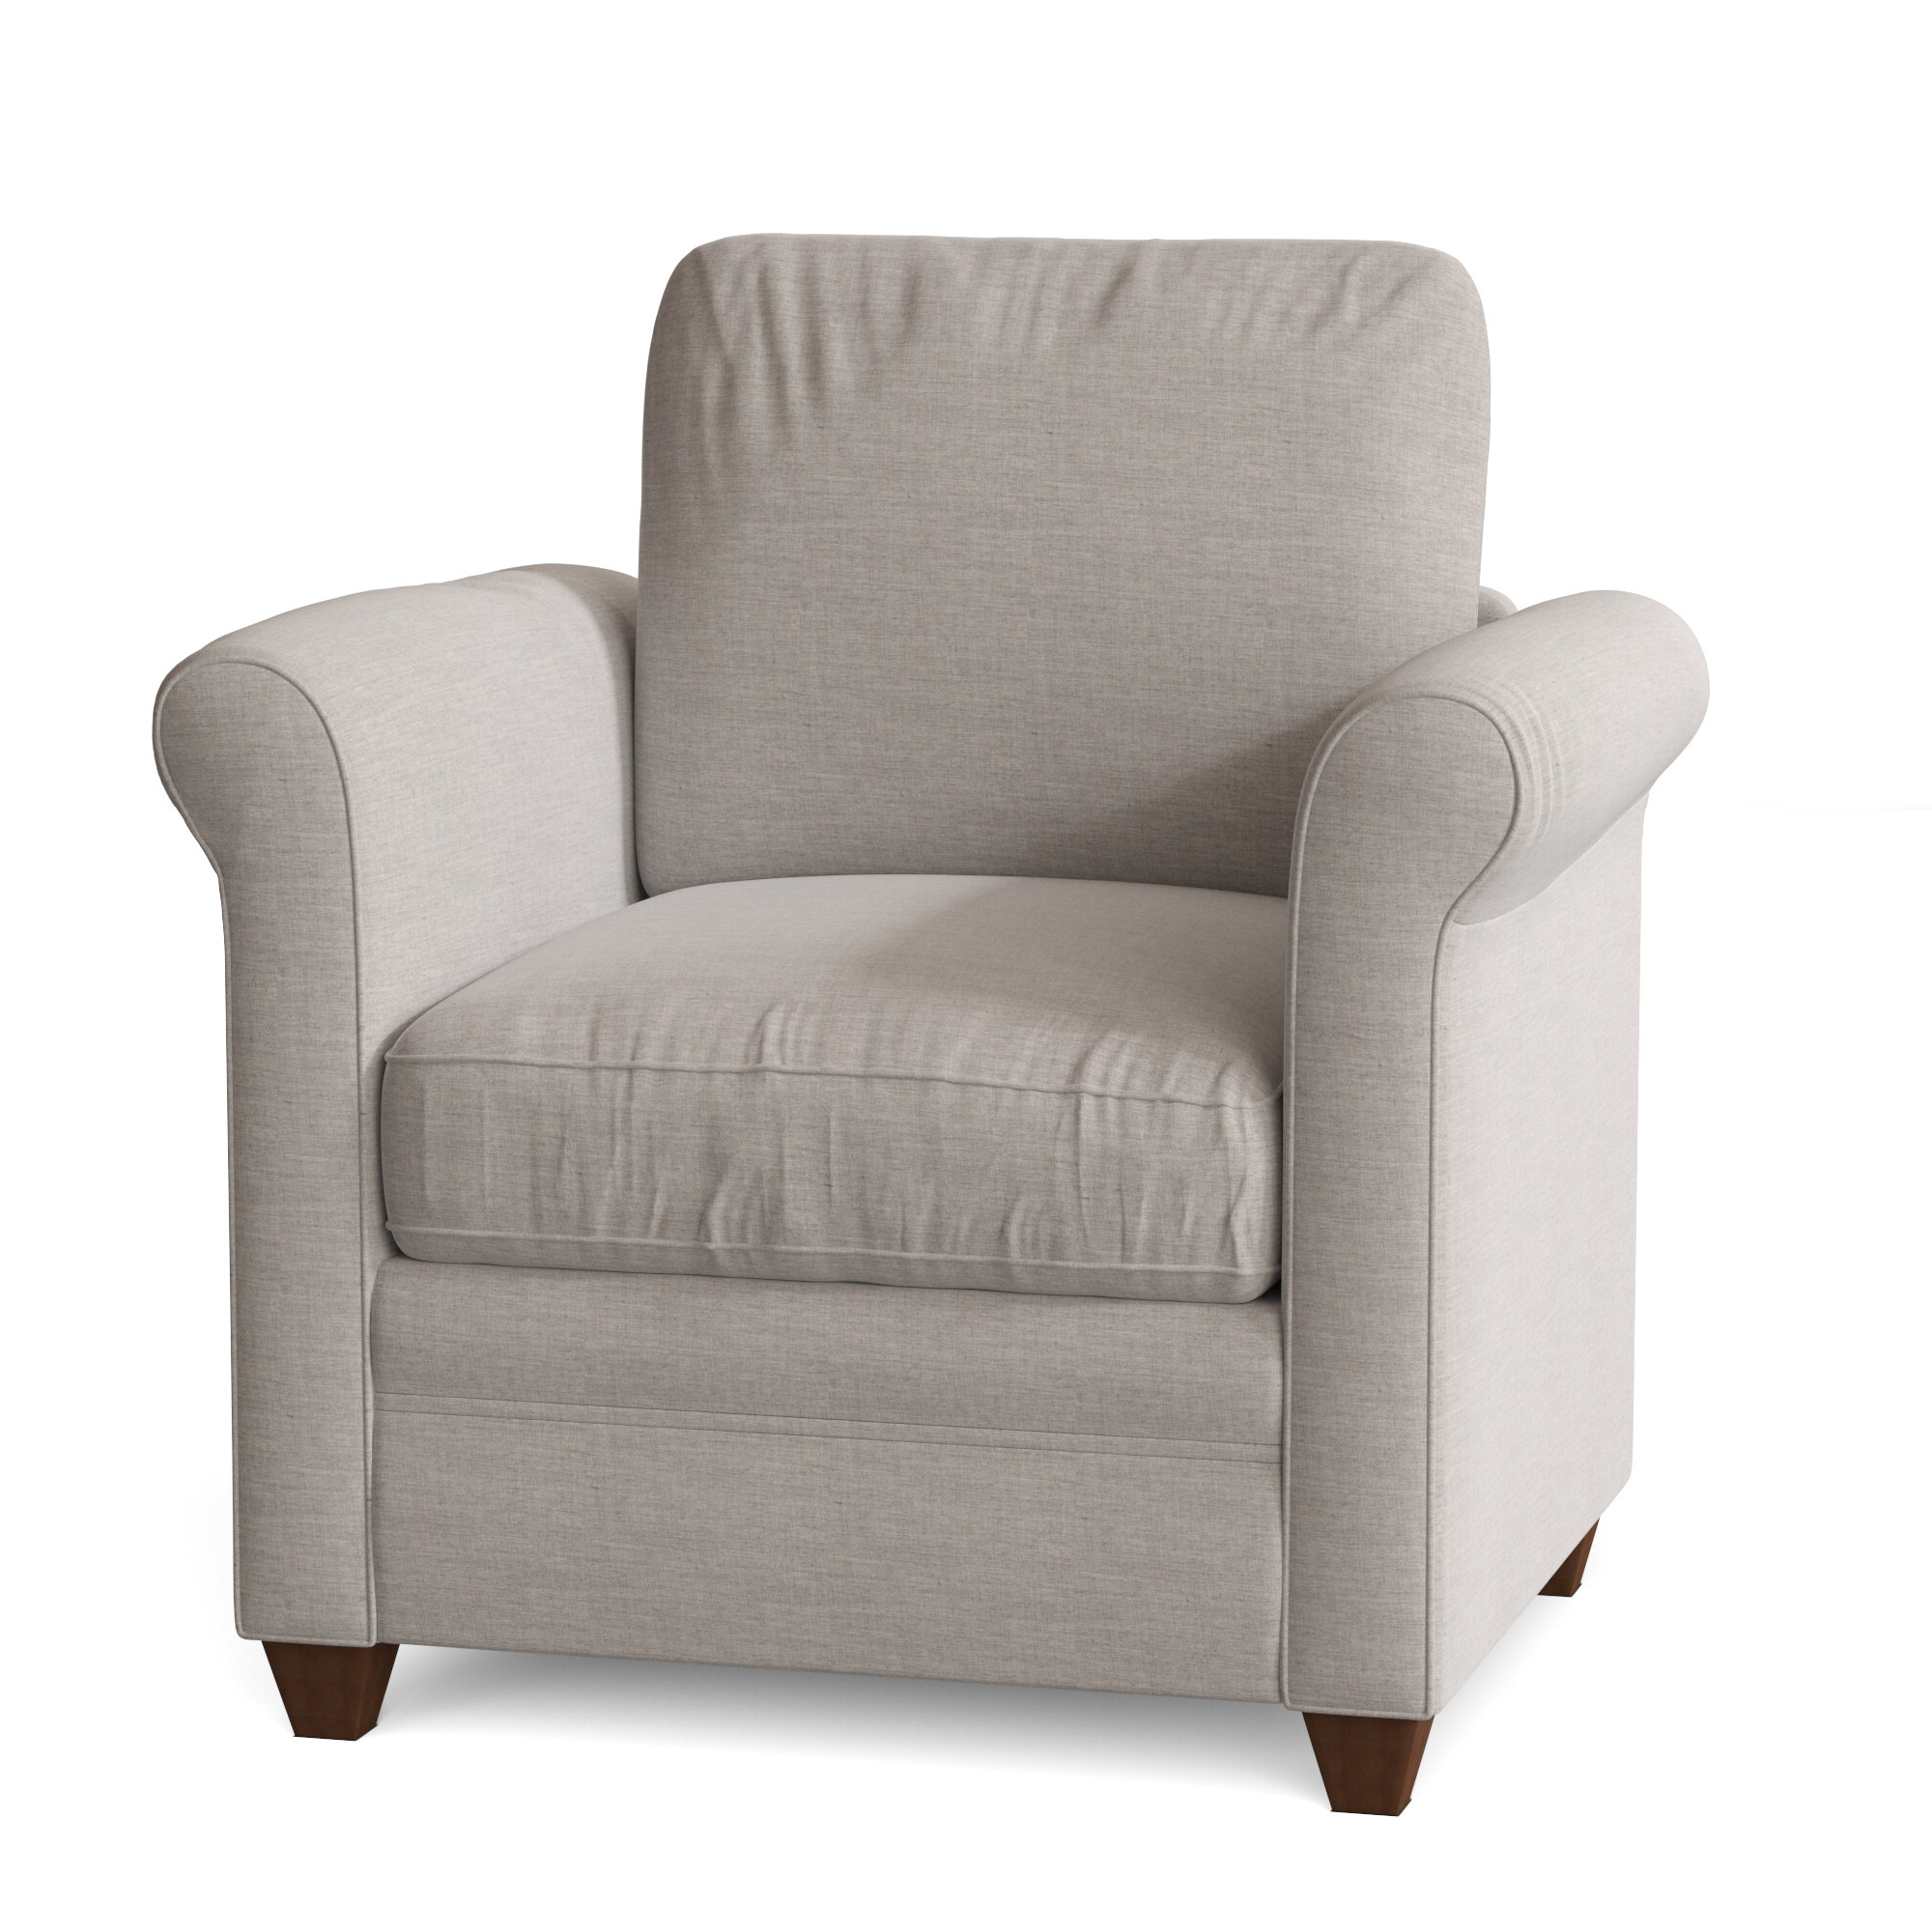 Wayfair In Preferred Young Armchairs By Birch Lane (View 9 of 20)